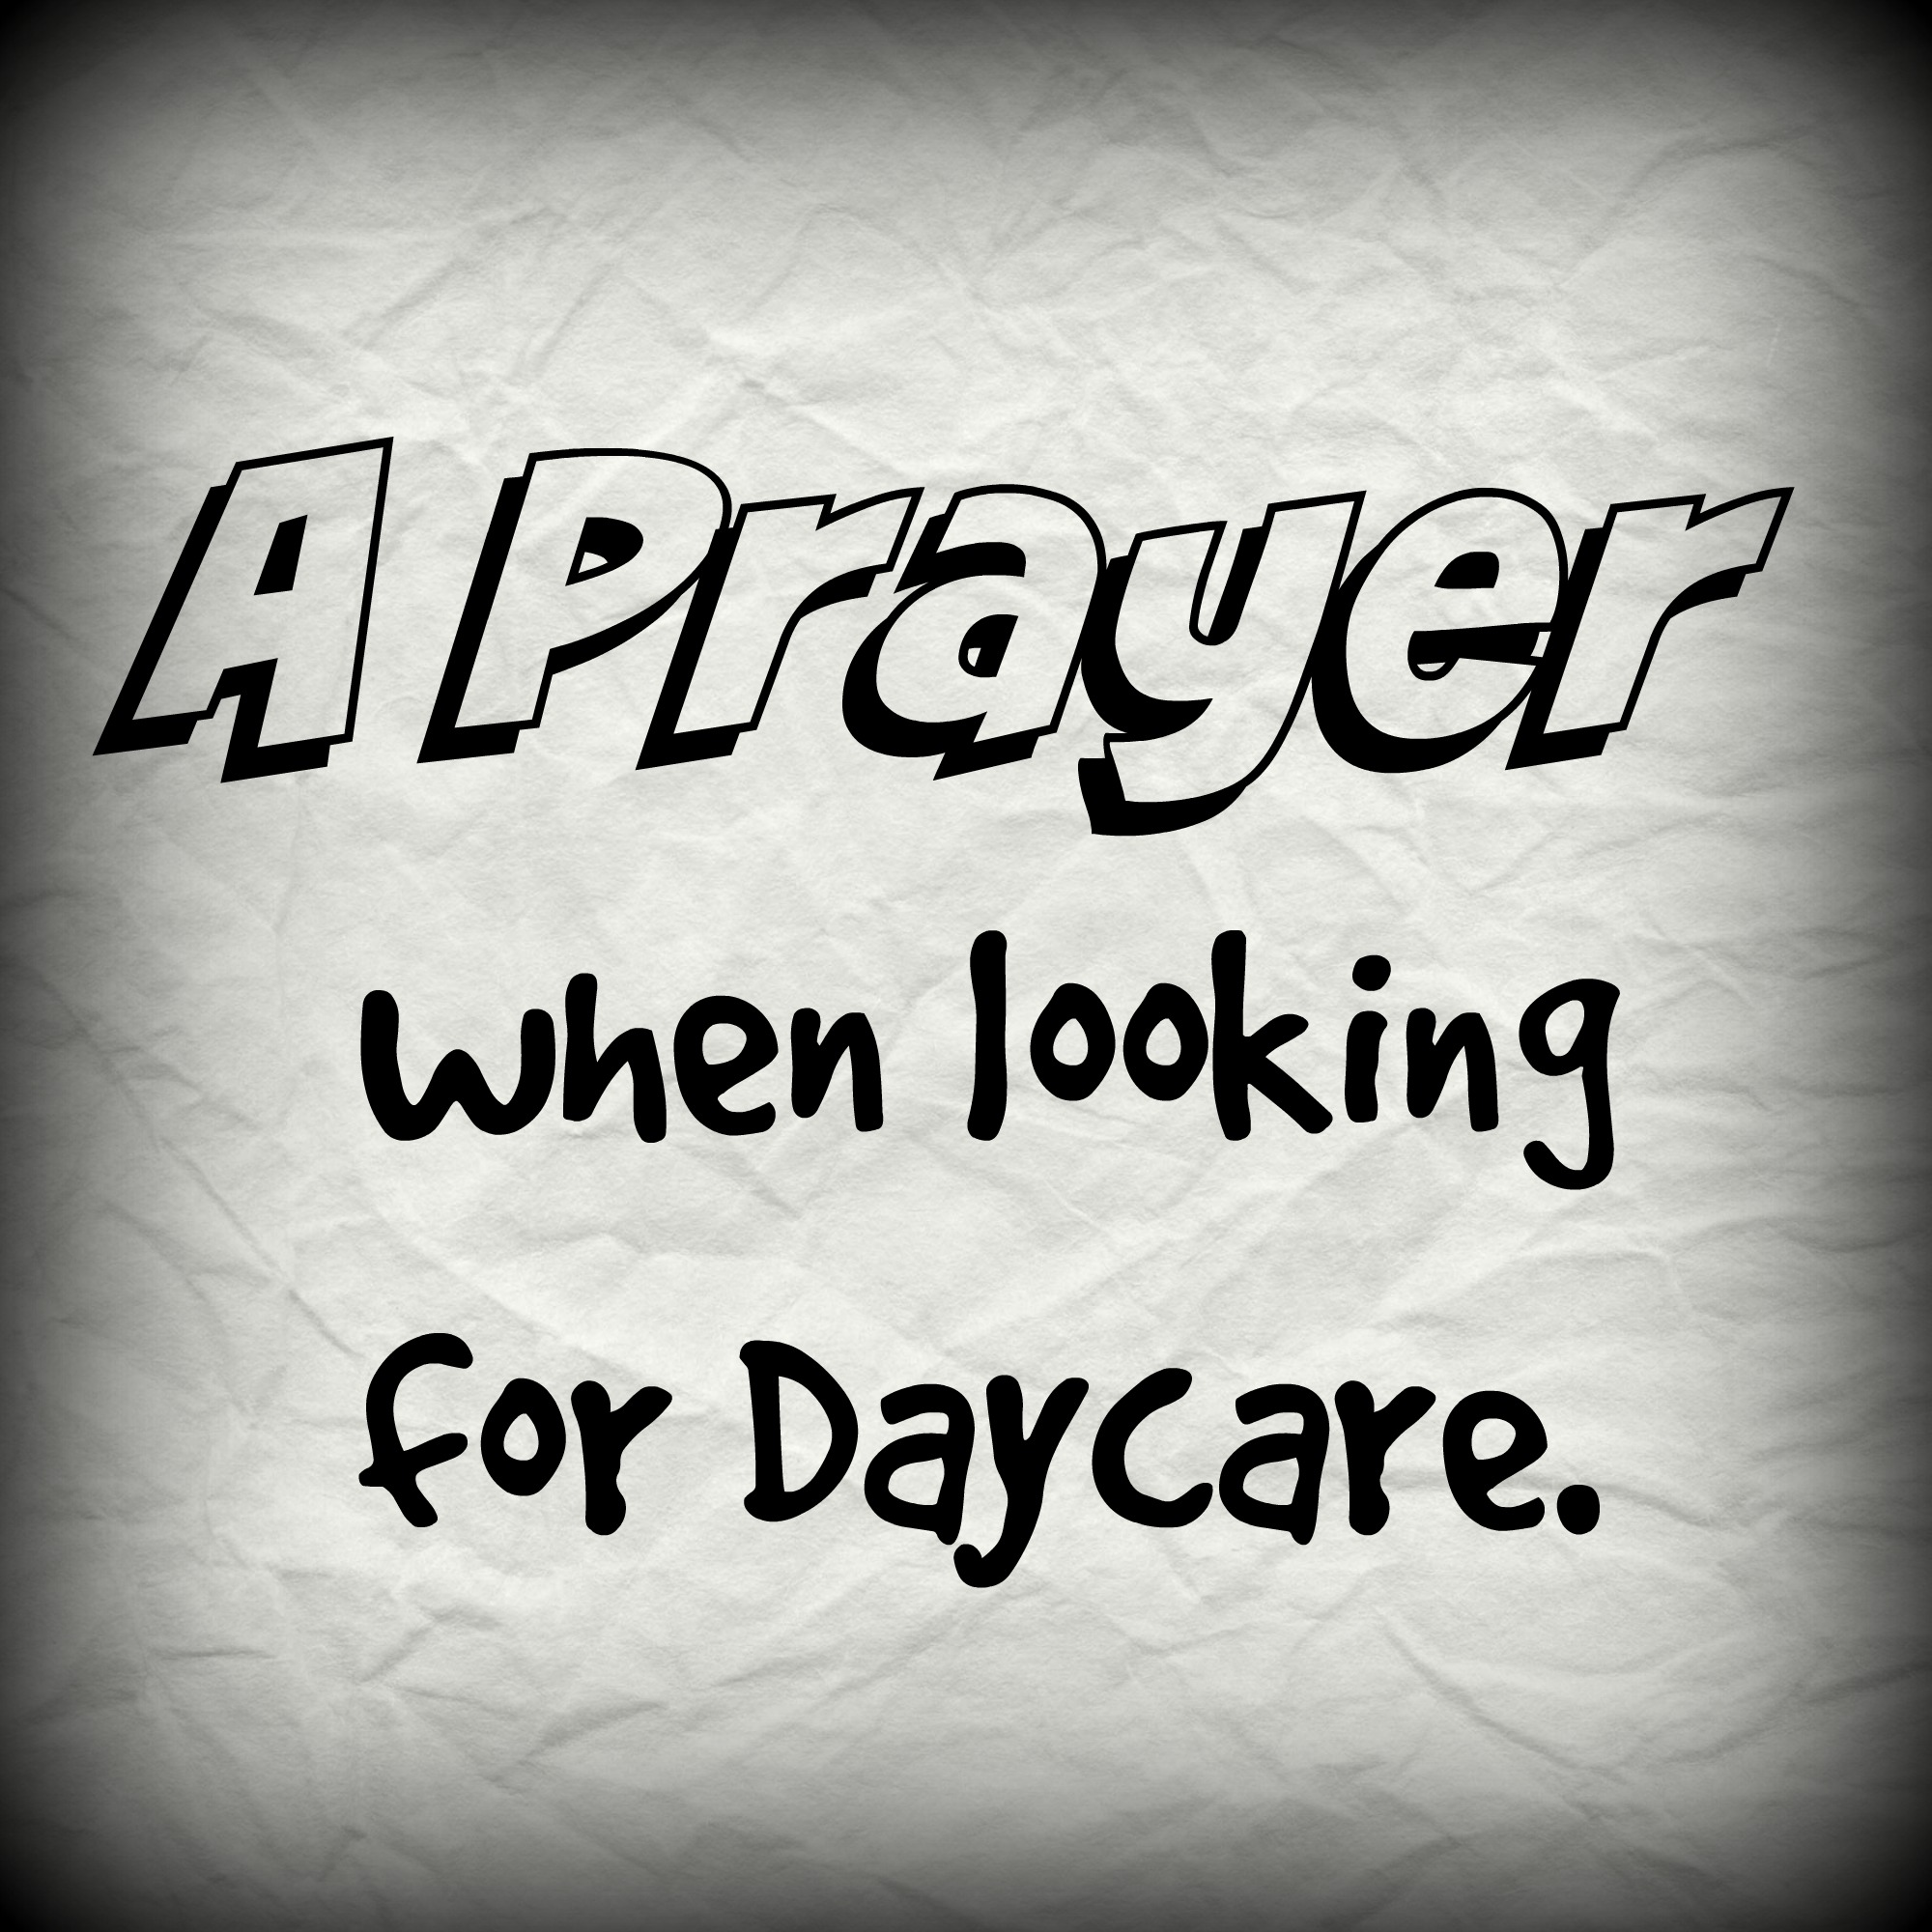 Daycare Quotes A Prayer When Looking For Day Care…  Jen Sandbulte